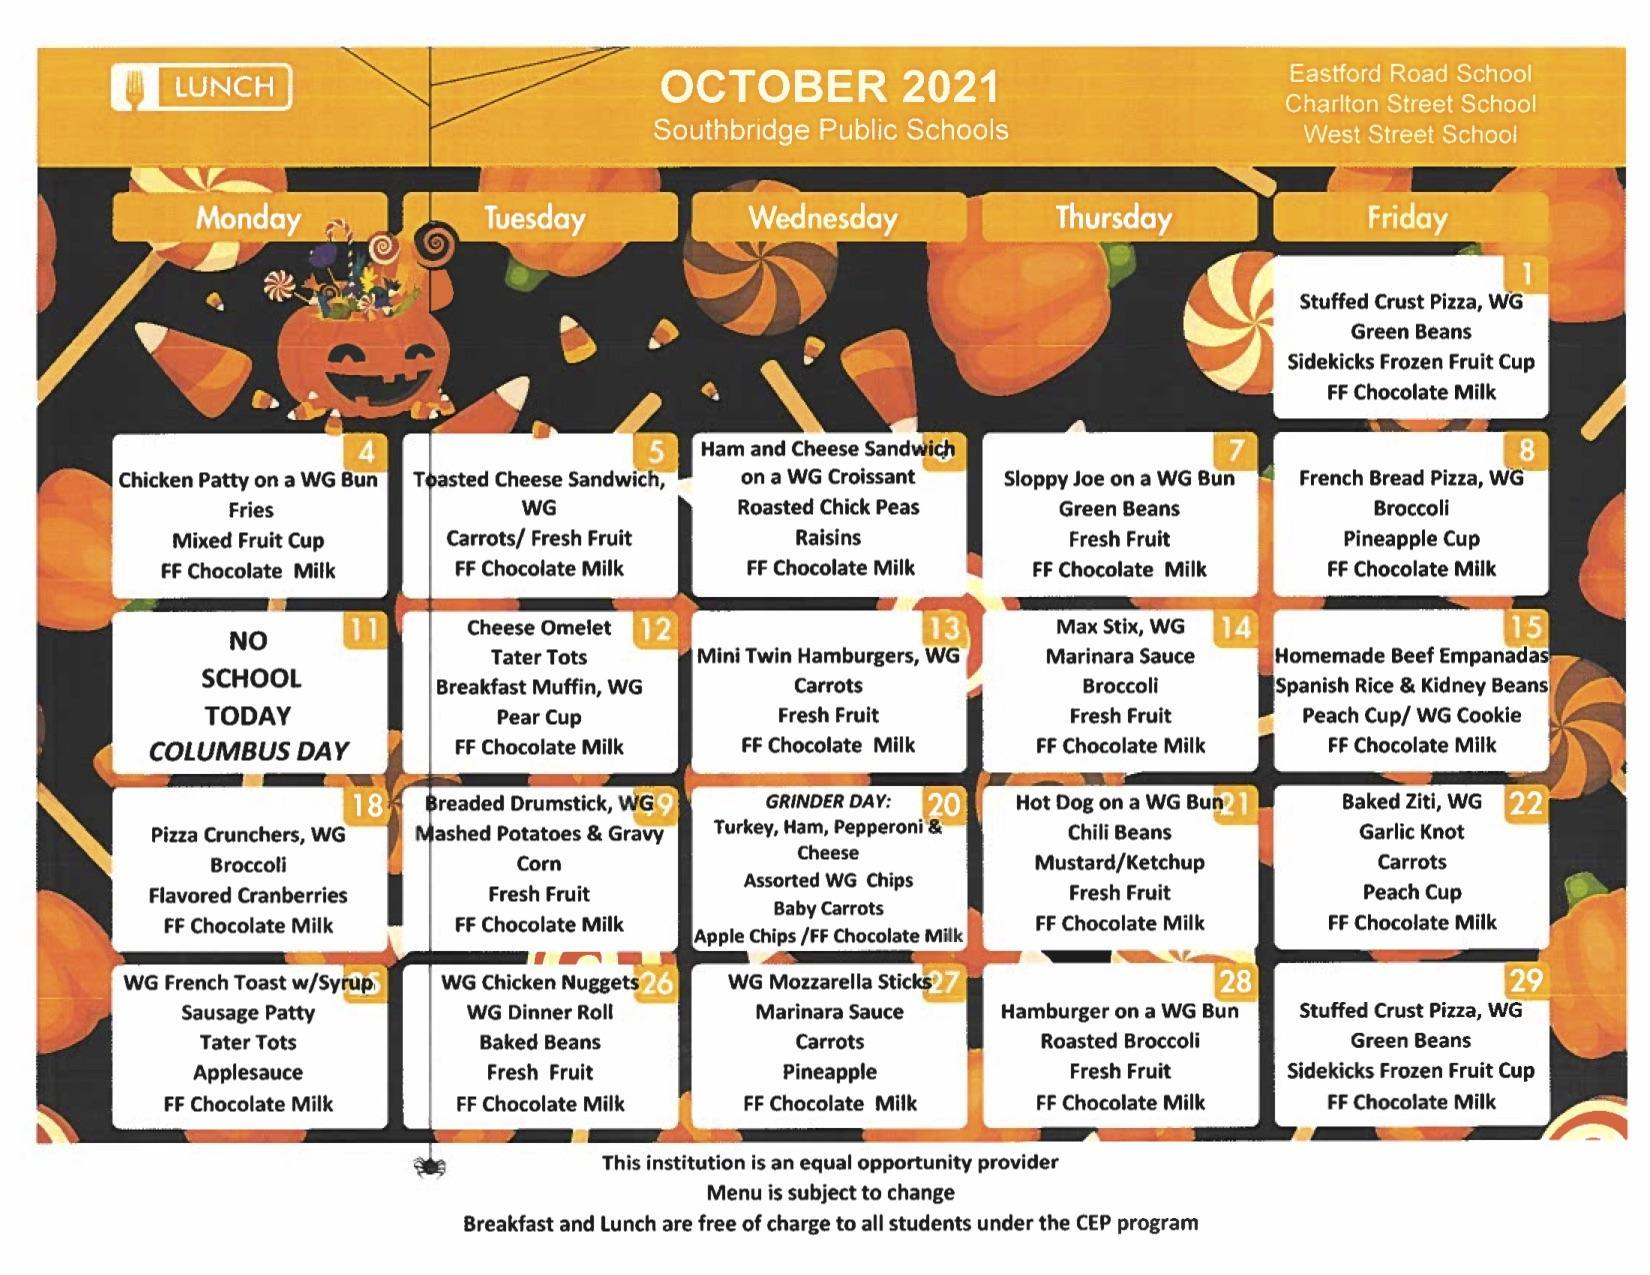 October 2021 Elementary Schools menu - also available for download on this page